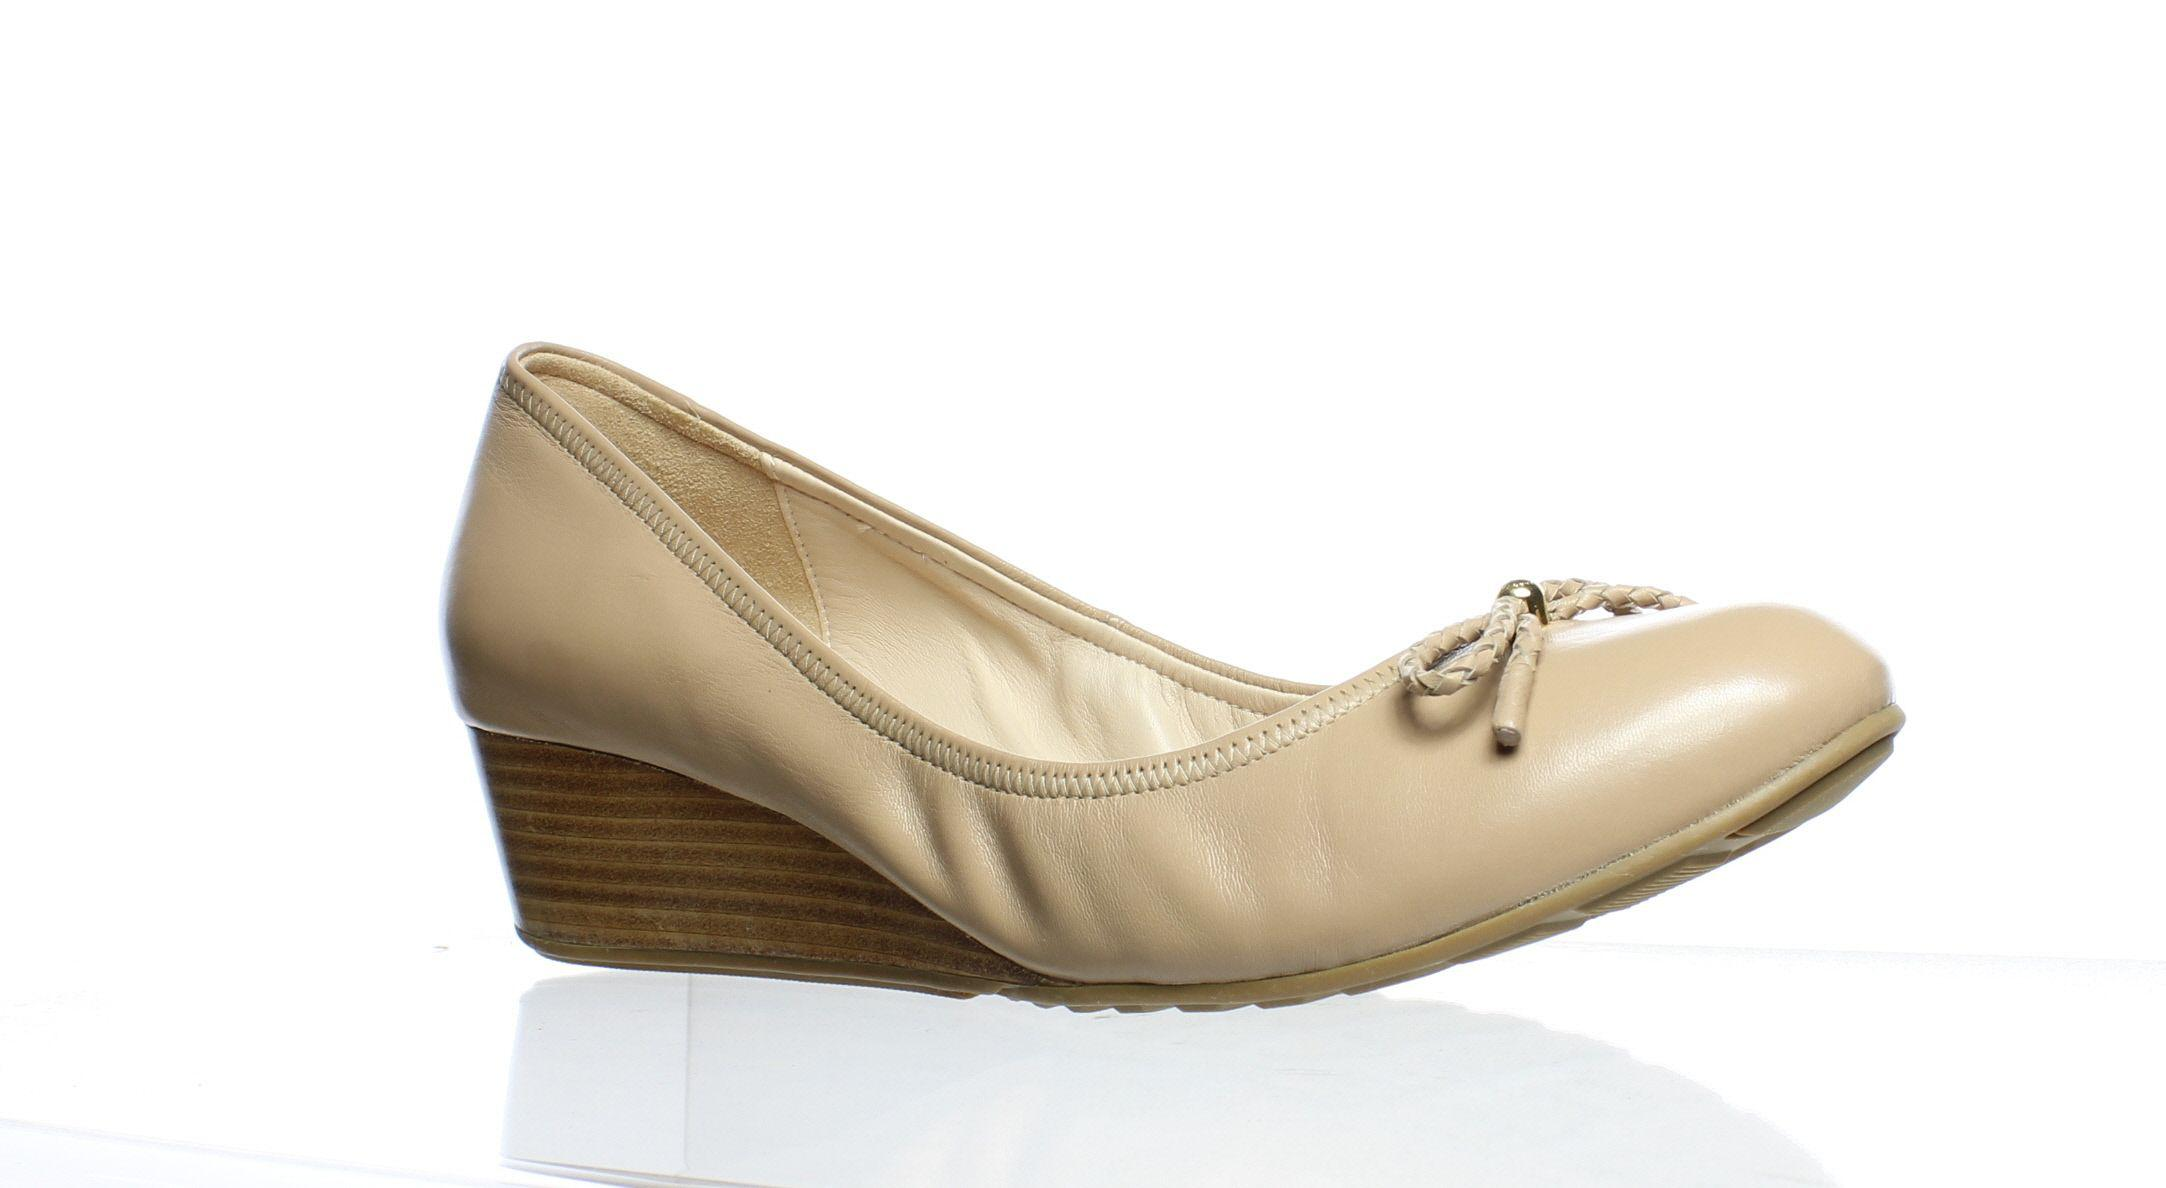 239390b14ee Lyst - Cole Haan Womens Tali Grand Lac Maple Sugar Pumps in Natural